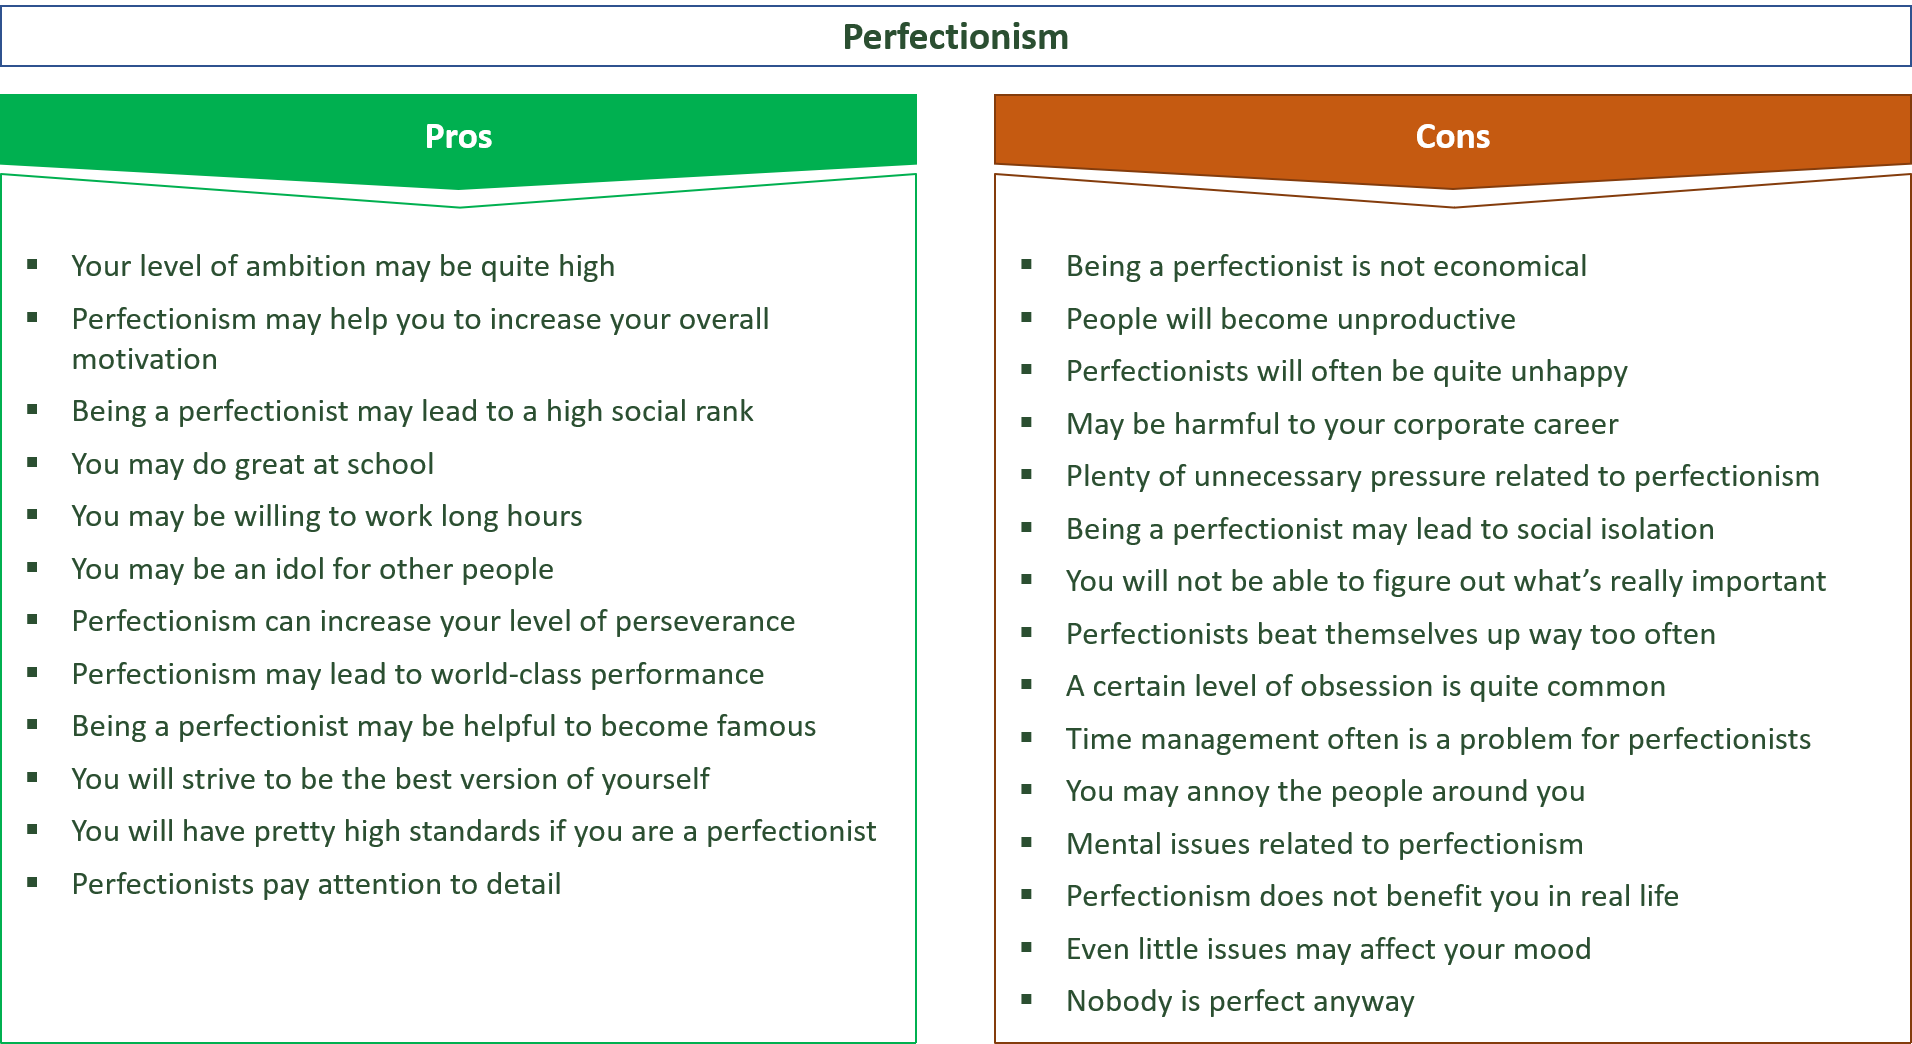 advantages and disadvantages of perfectionism